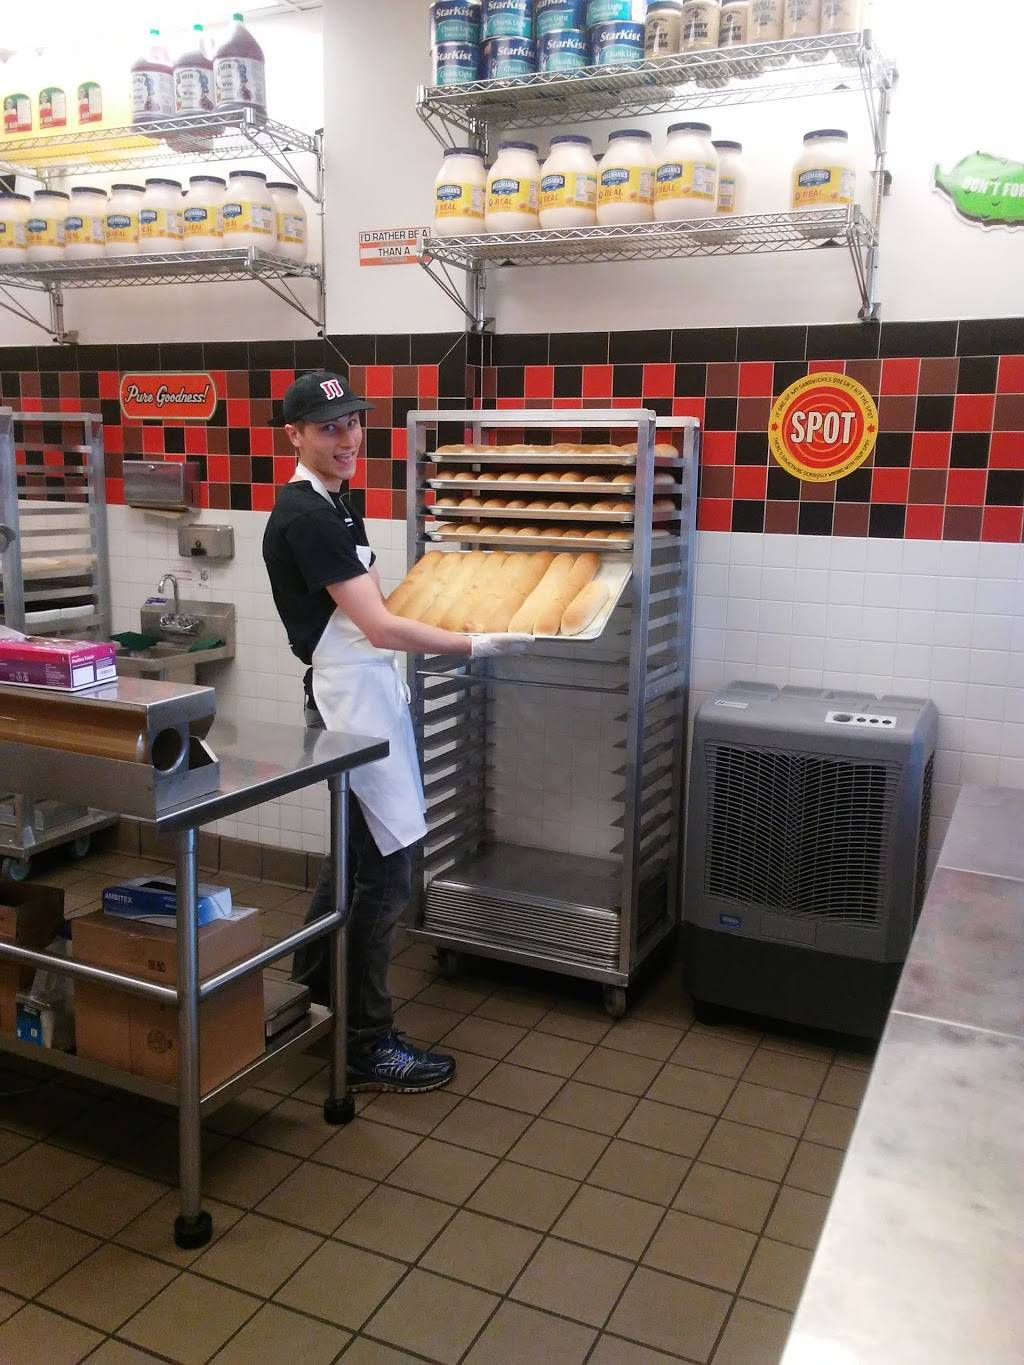 Jimmy Johns | meal delivery | 820 Central Ave, Highland Park, IL 60035, USA | 8476819440 OR +1 847-681-9440